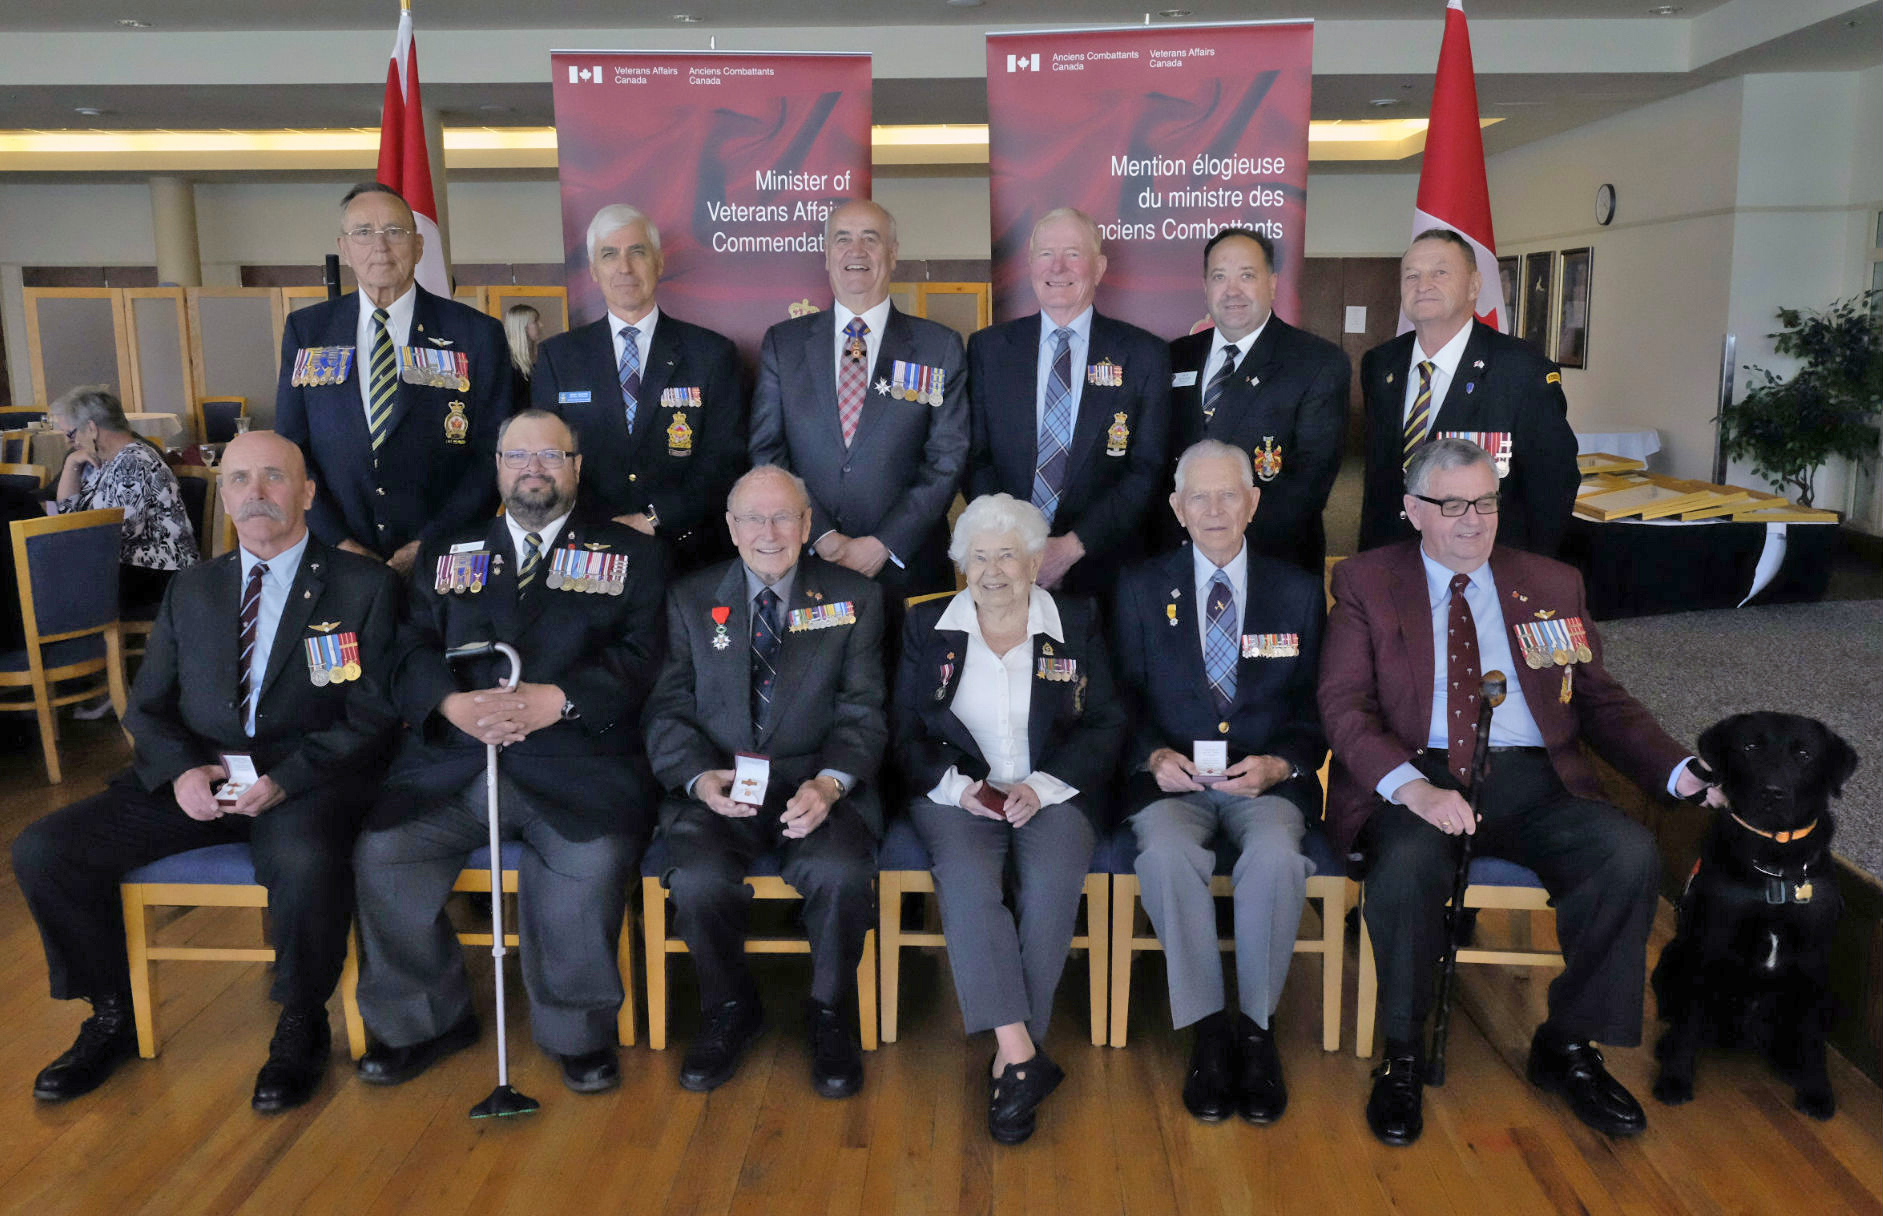 "The 11 Canadians who received the Minister of Veterans Affairs Commendation from Minister Julian Fantino on September 12, 2014, are (back, from left) Donald Richard McDonald, Terence Chester, (Minister of Veterans Affairs Julian Fantino,) Ted Gibbon, Peter Scot Betcher, Sharle Edward Widenmaier, and (front, from left) Donald Thomas, James Patrick MacMillan-Murphy, Peter Godwin Chance, Joan O. Thomas, James Francis ""Stocky"" Edwards, and Padre Arthur Donald Lee. PHOTO: Courtesy of Veterans Affairs Canada"